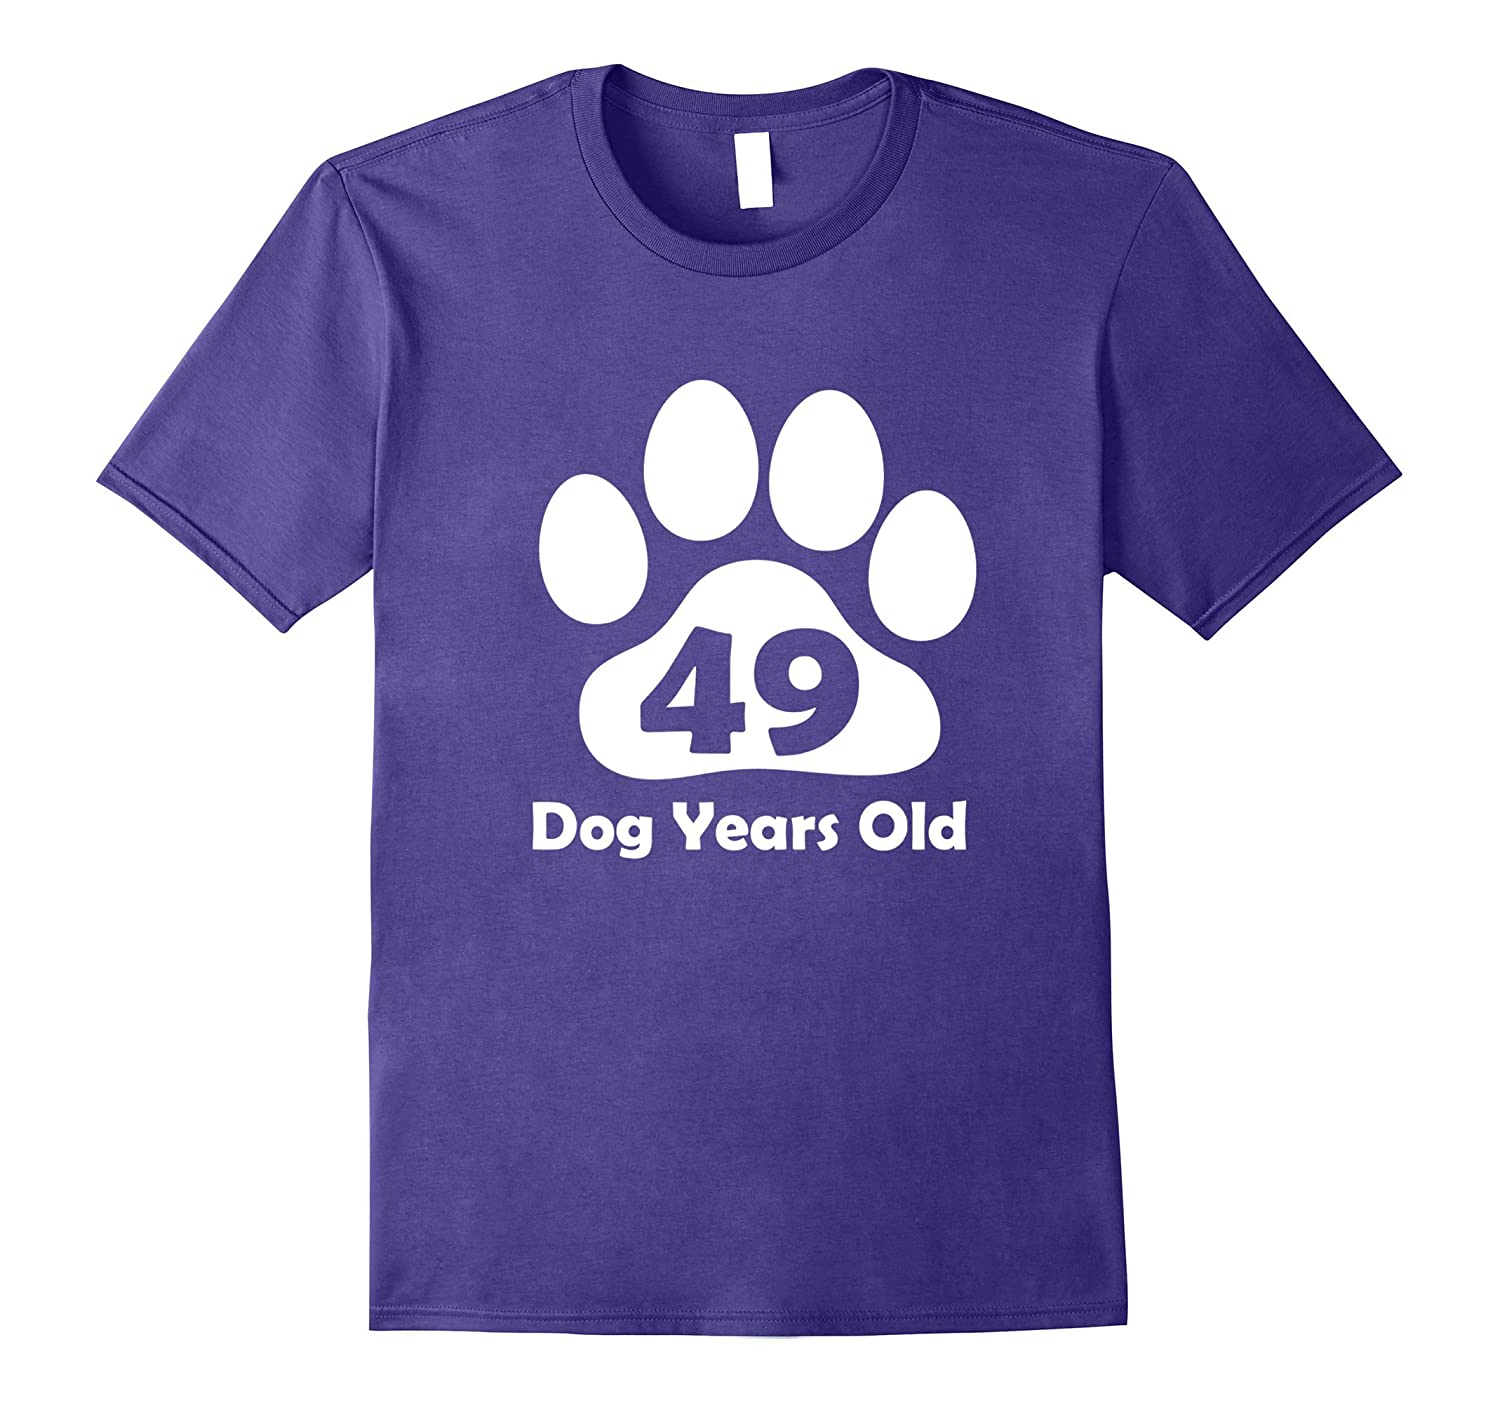 49 Dog Years Old T-Shirt Funny 7th Birthday Gift Puppy Lover-TH